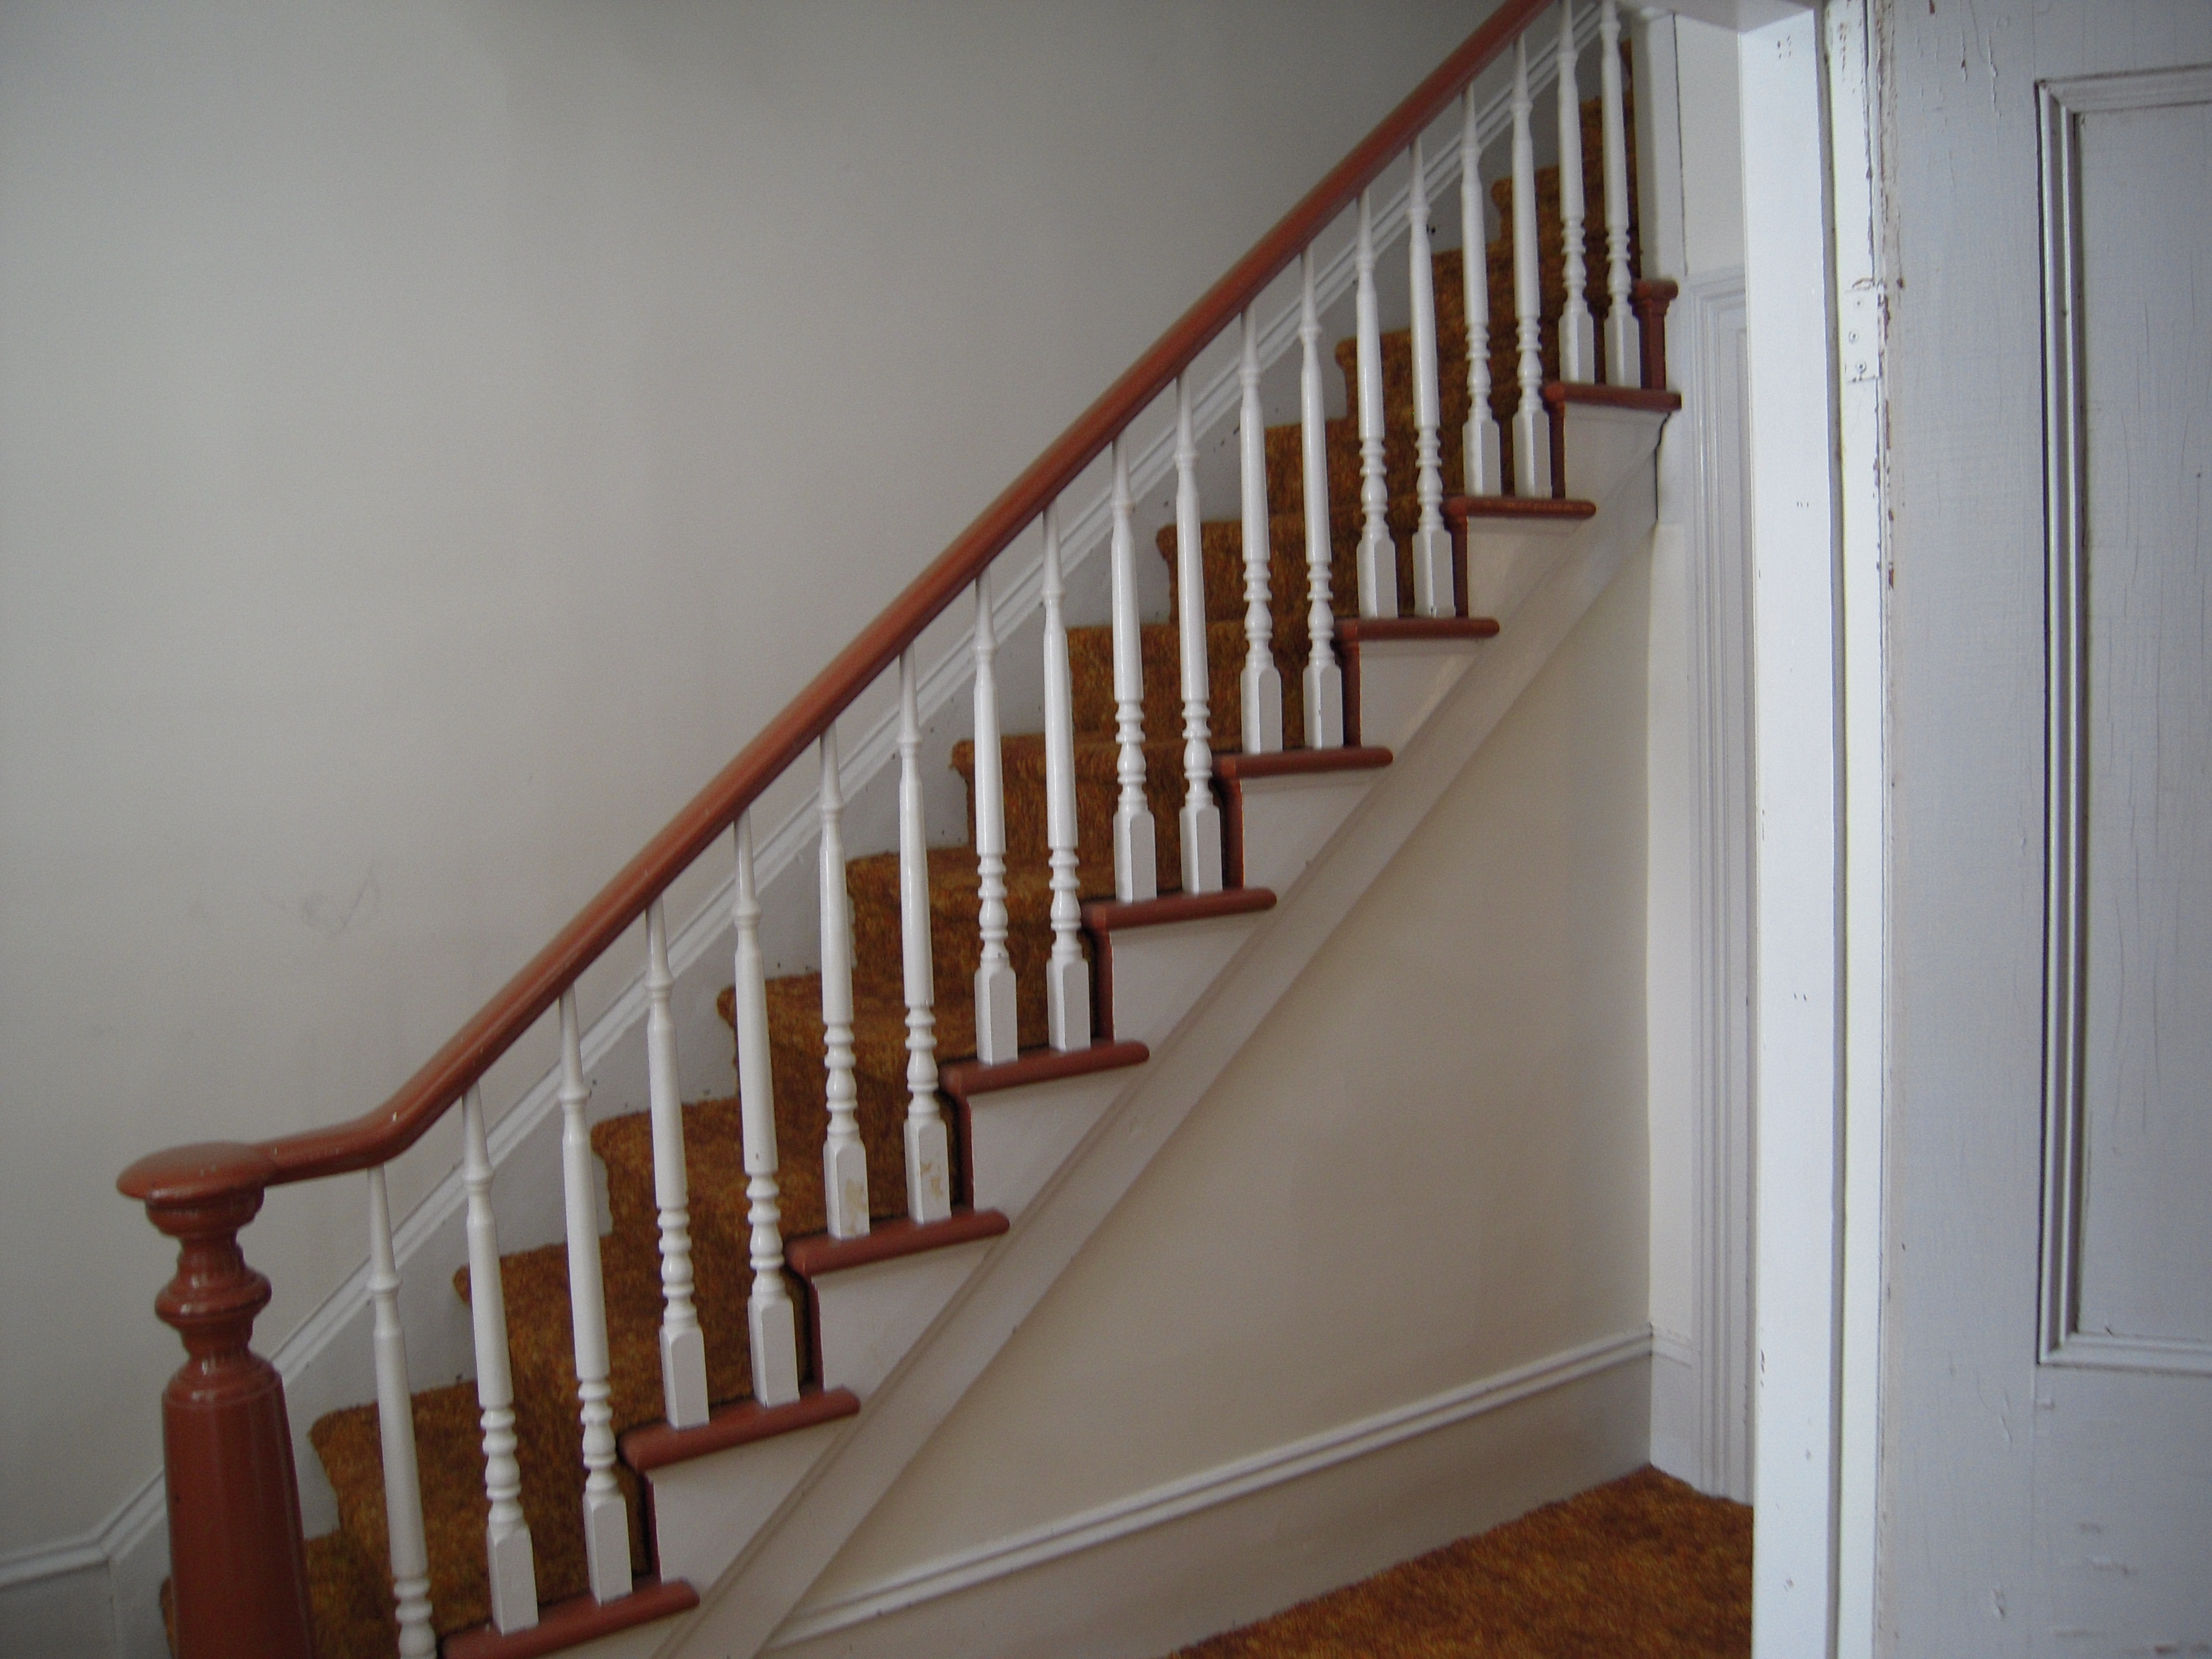 Why Are There Two Staircases?